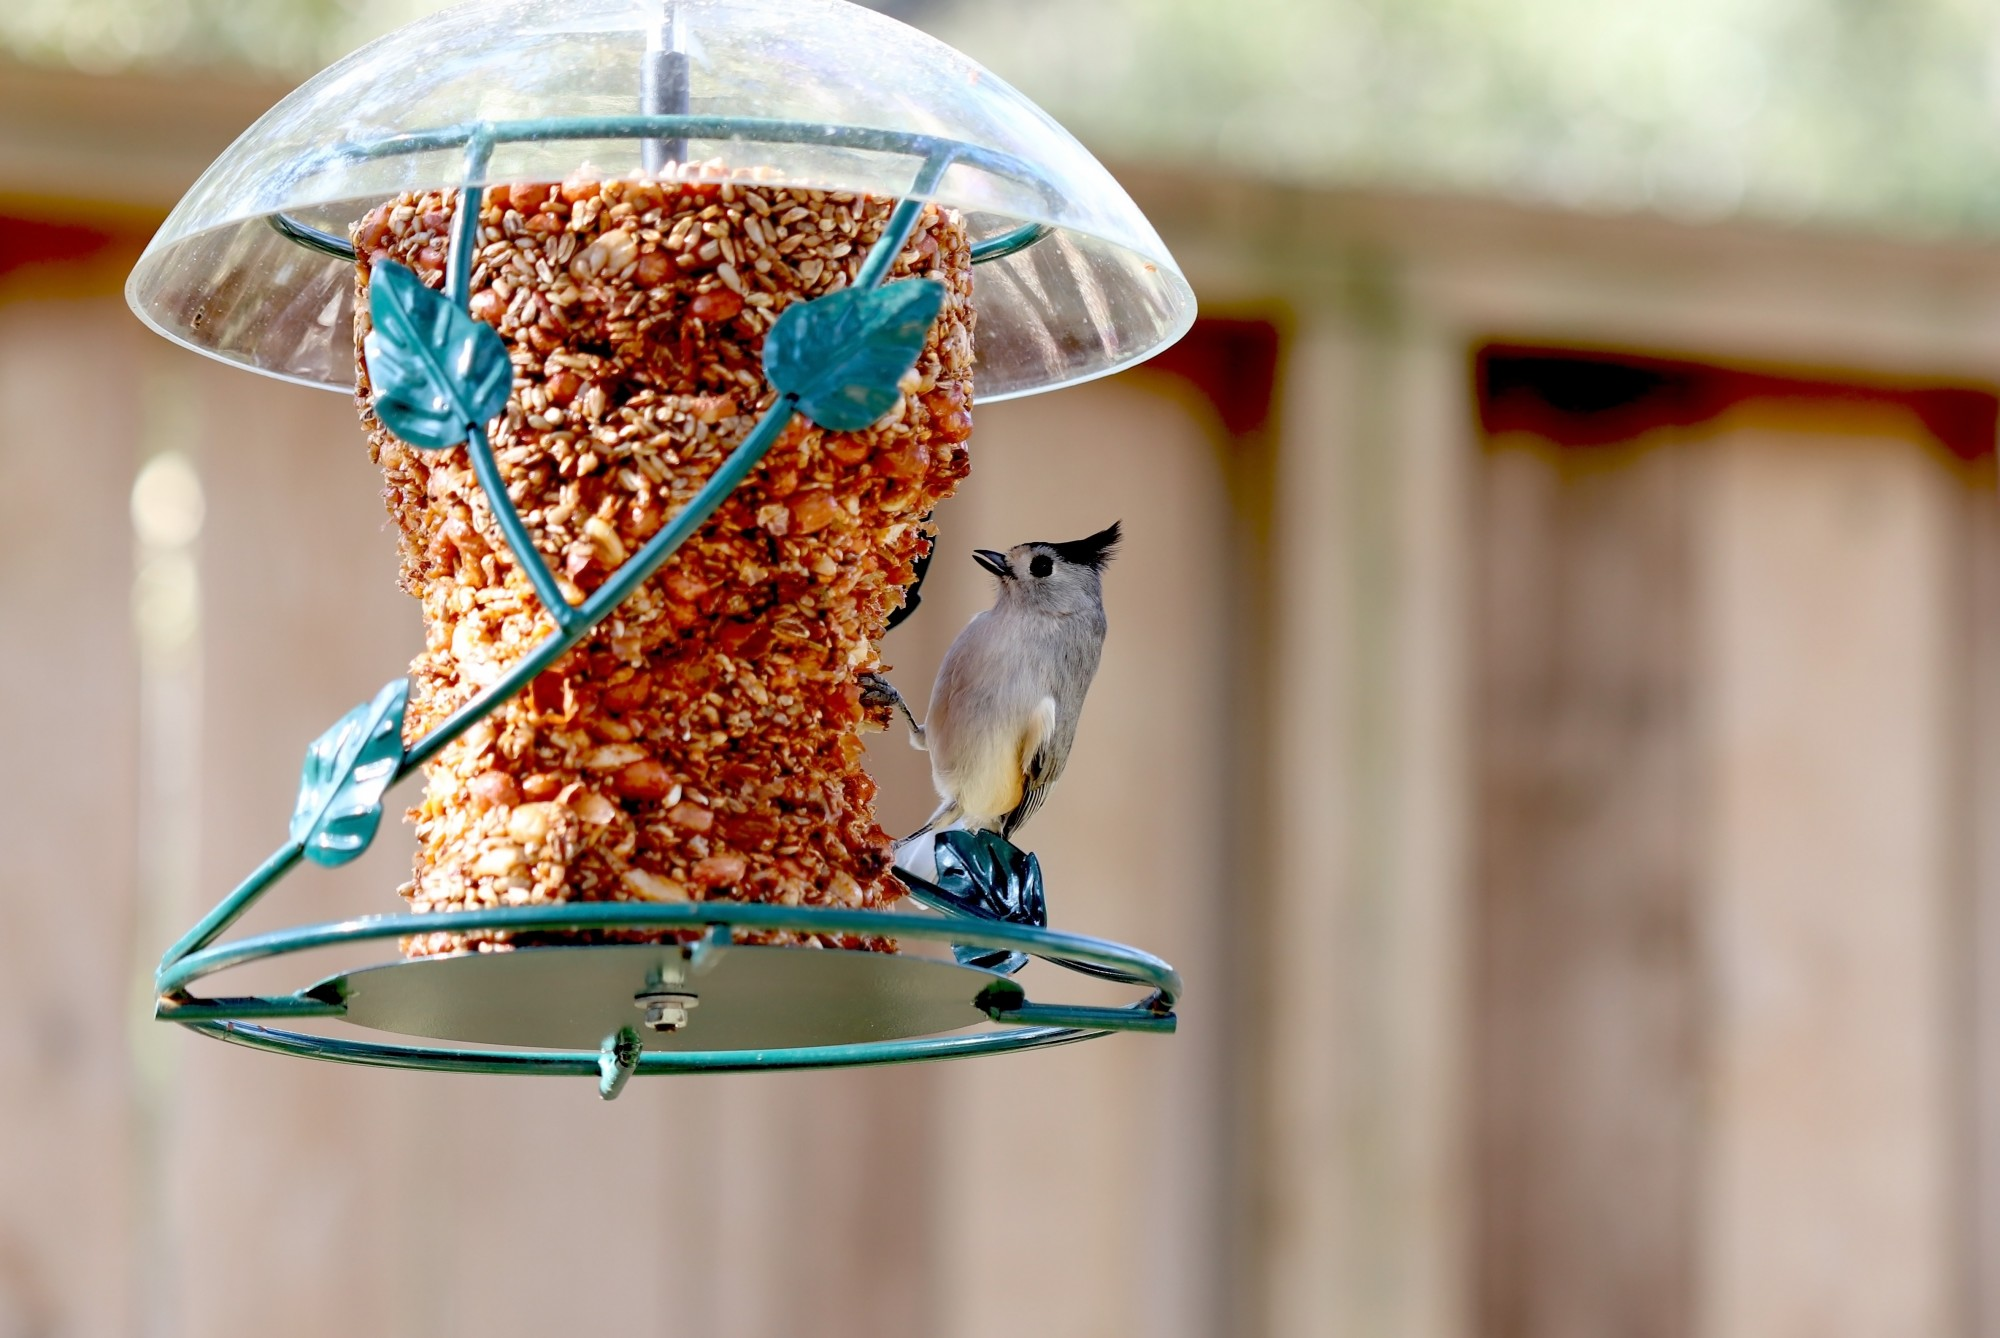 Why Won't Birds Come to My Feeder?: 5 Common Mistakes You May Be Making